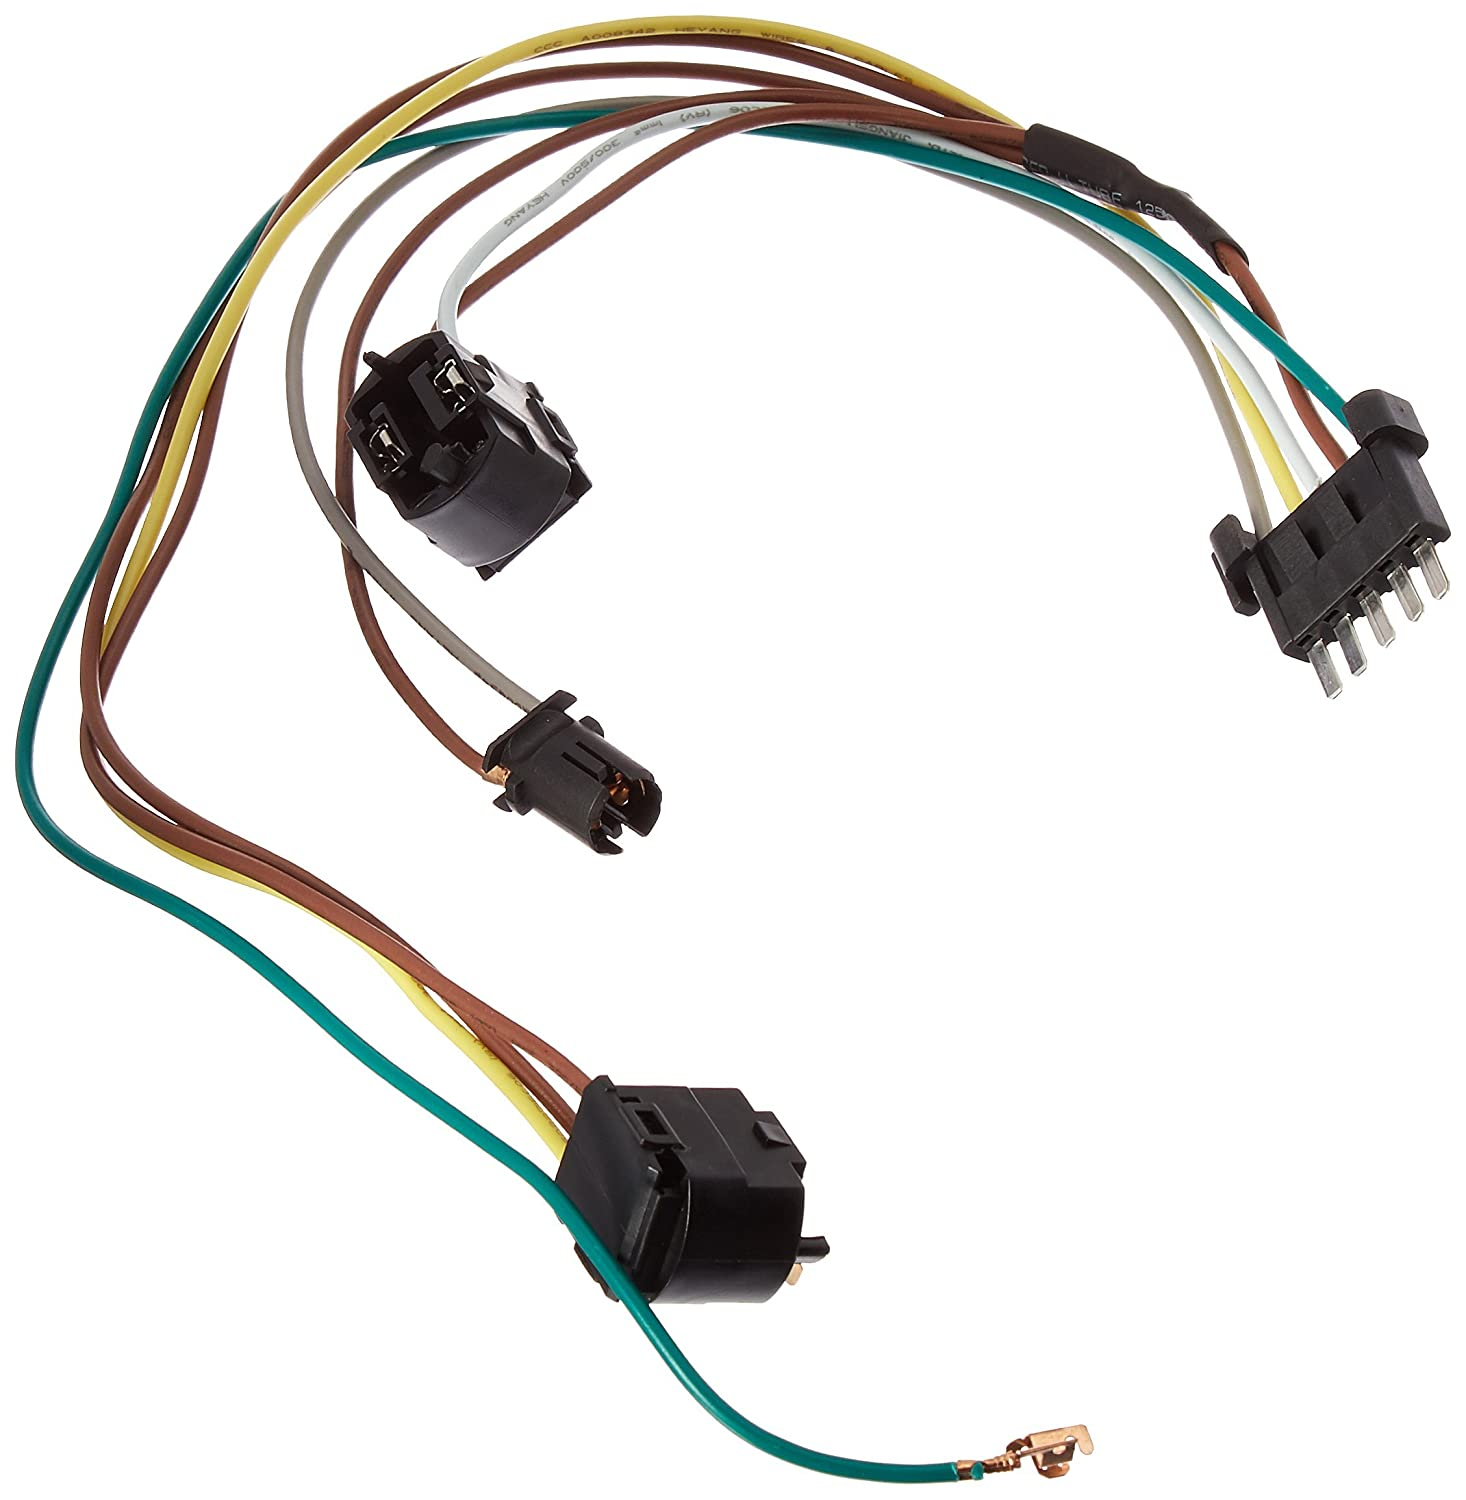 amazon com: motorking dc109 02-07 mecedes left or right headlight wire  harness connector kit c320 c350 c280 c32 amg c240 c230: automotive